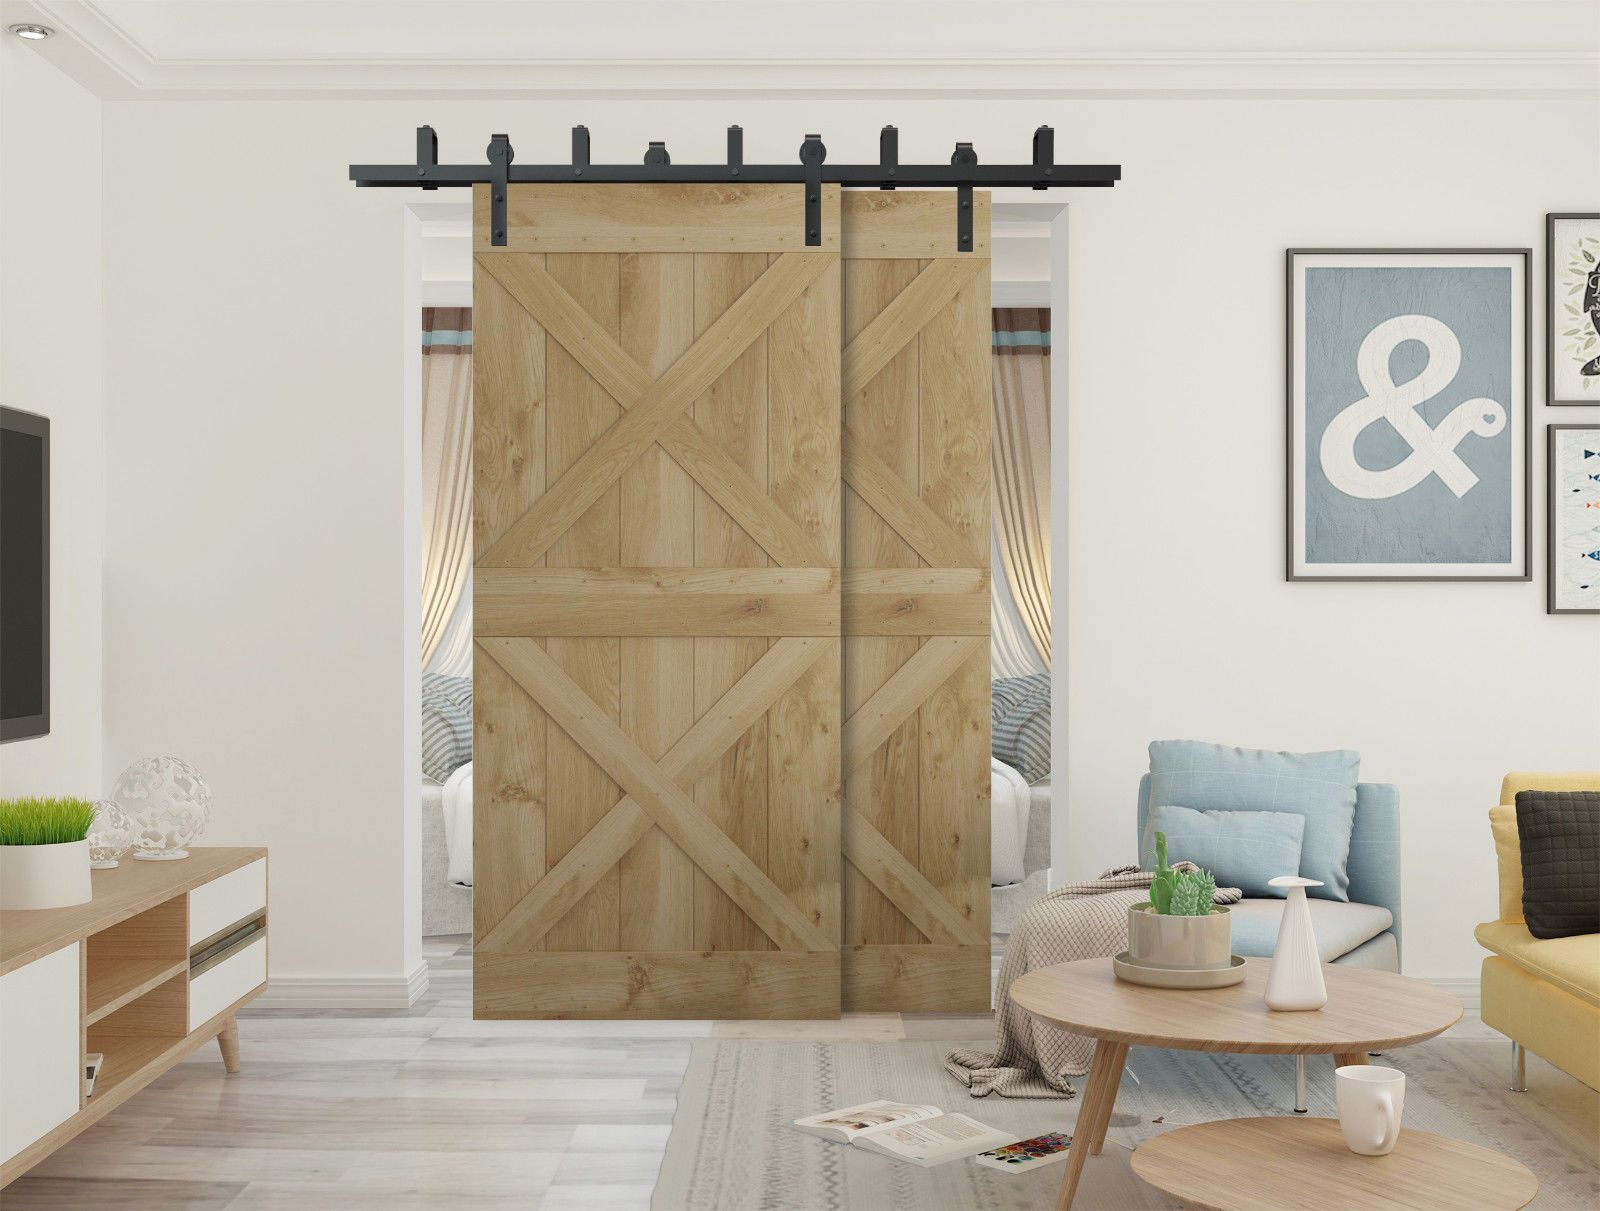 Details About Diyhd 5ft 10ft Rustic Black Bypass Double Sliding Barn Door Hardware Bypass Kit With Images Wood Doors Interior Double Sliding Barn Doors Barn Doors Sliding